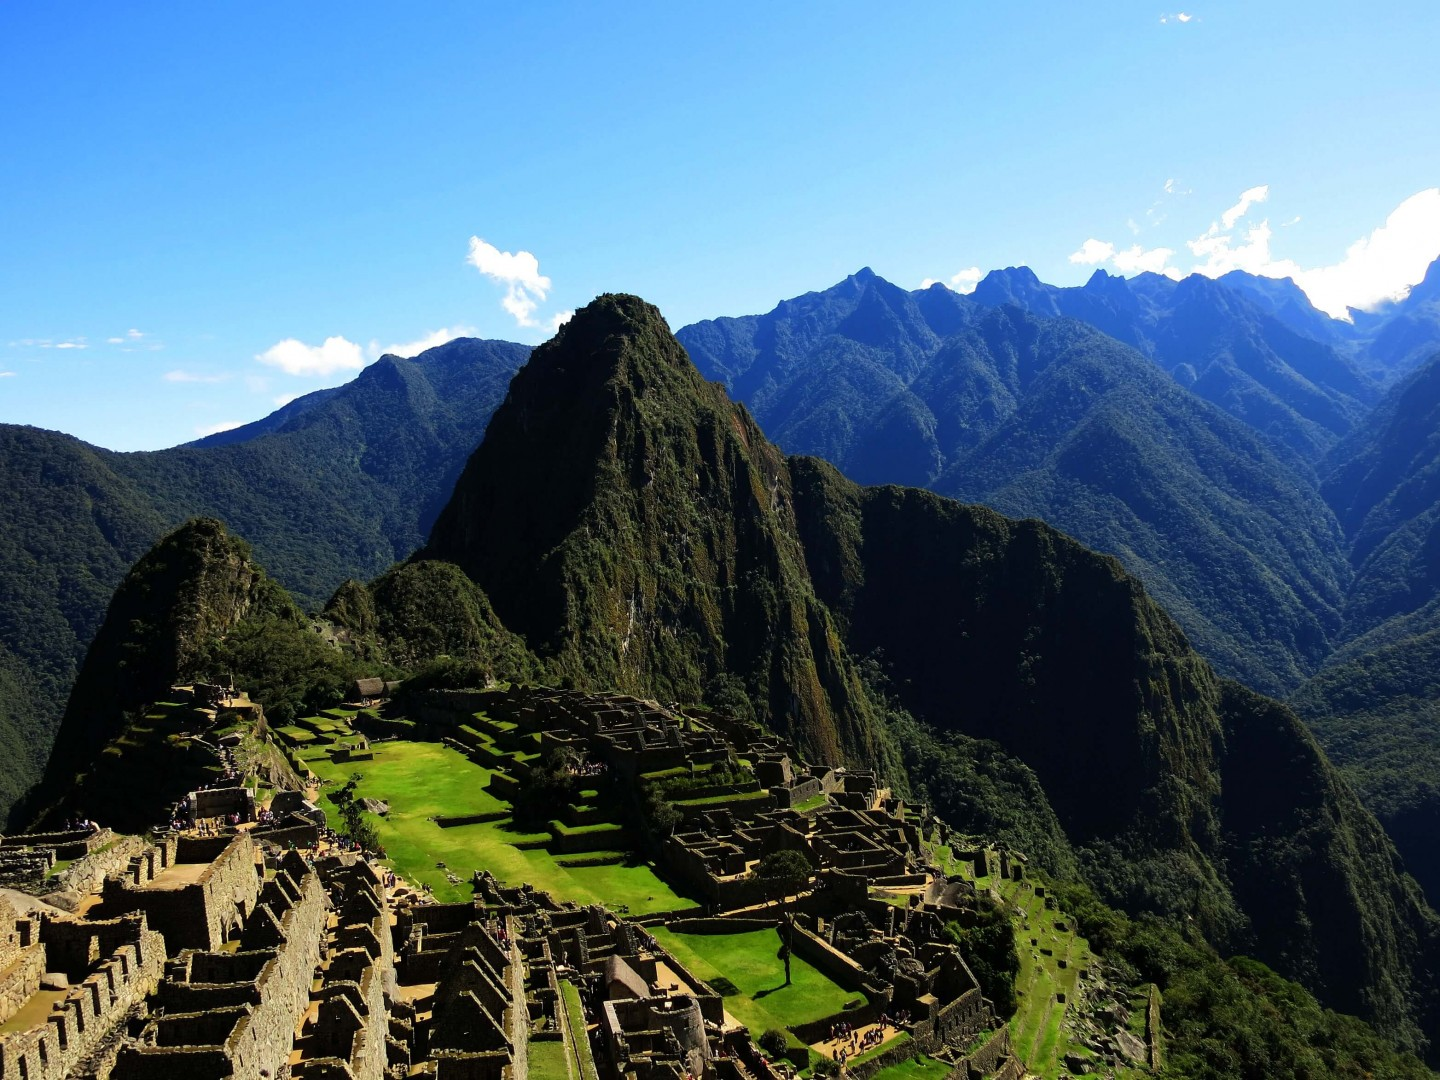 Postcards from Peru - Machu Picchu